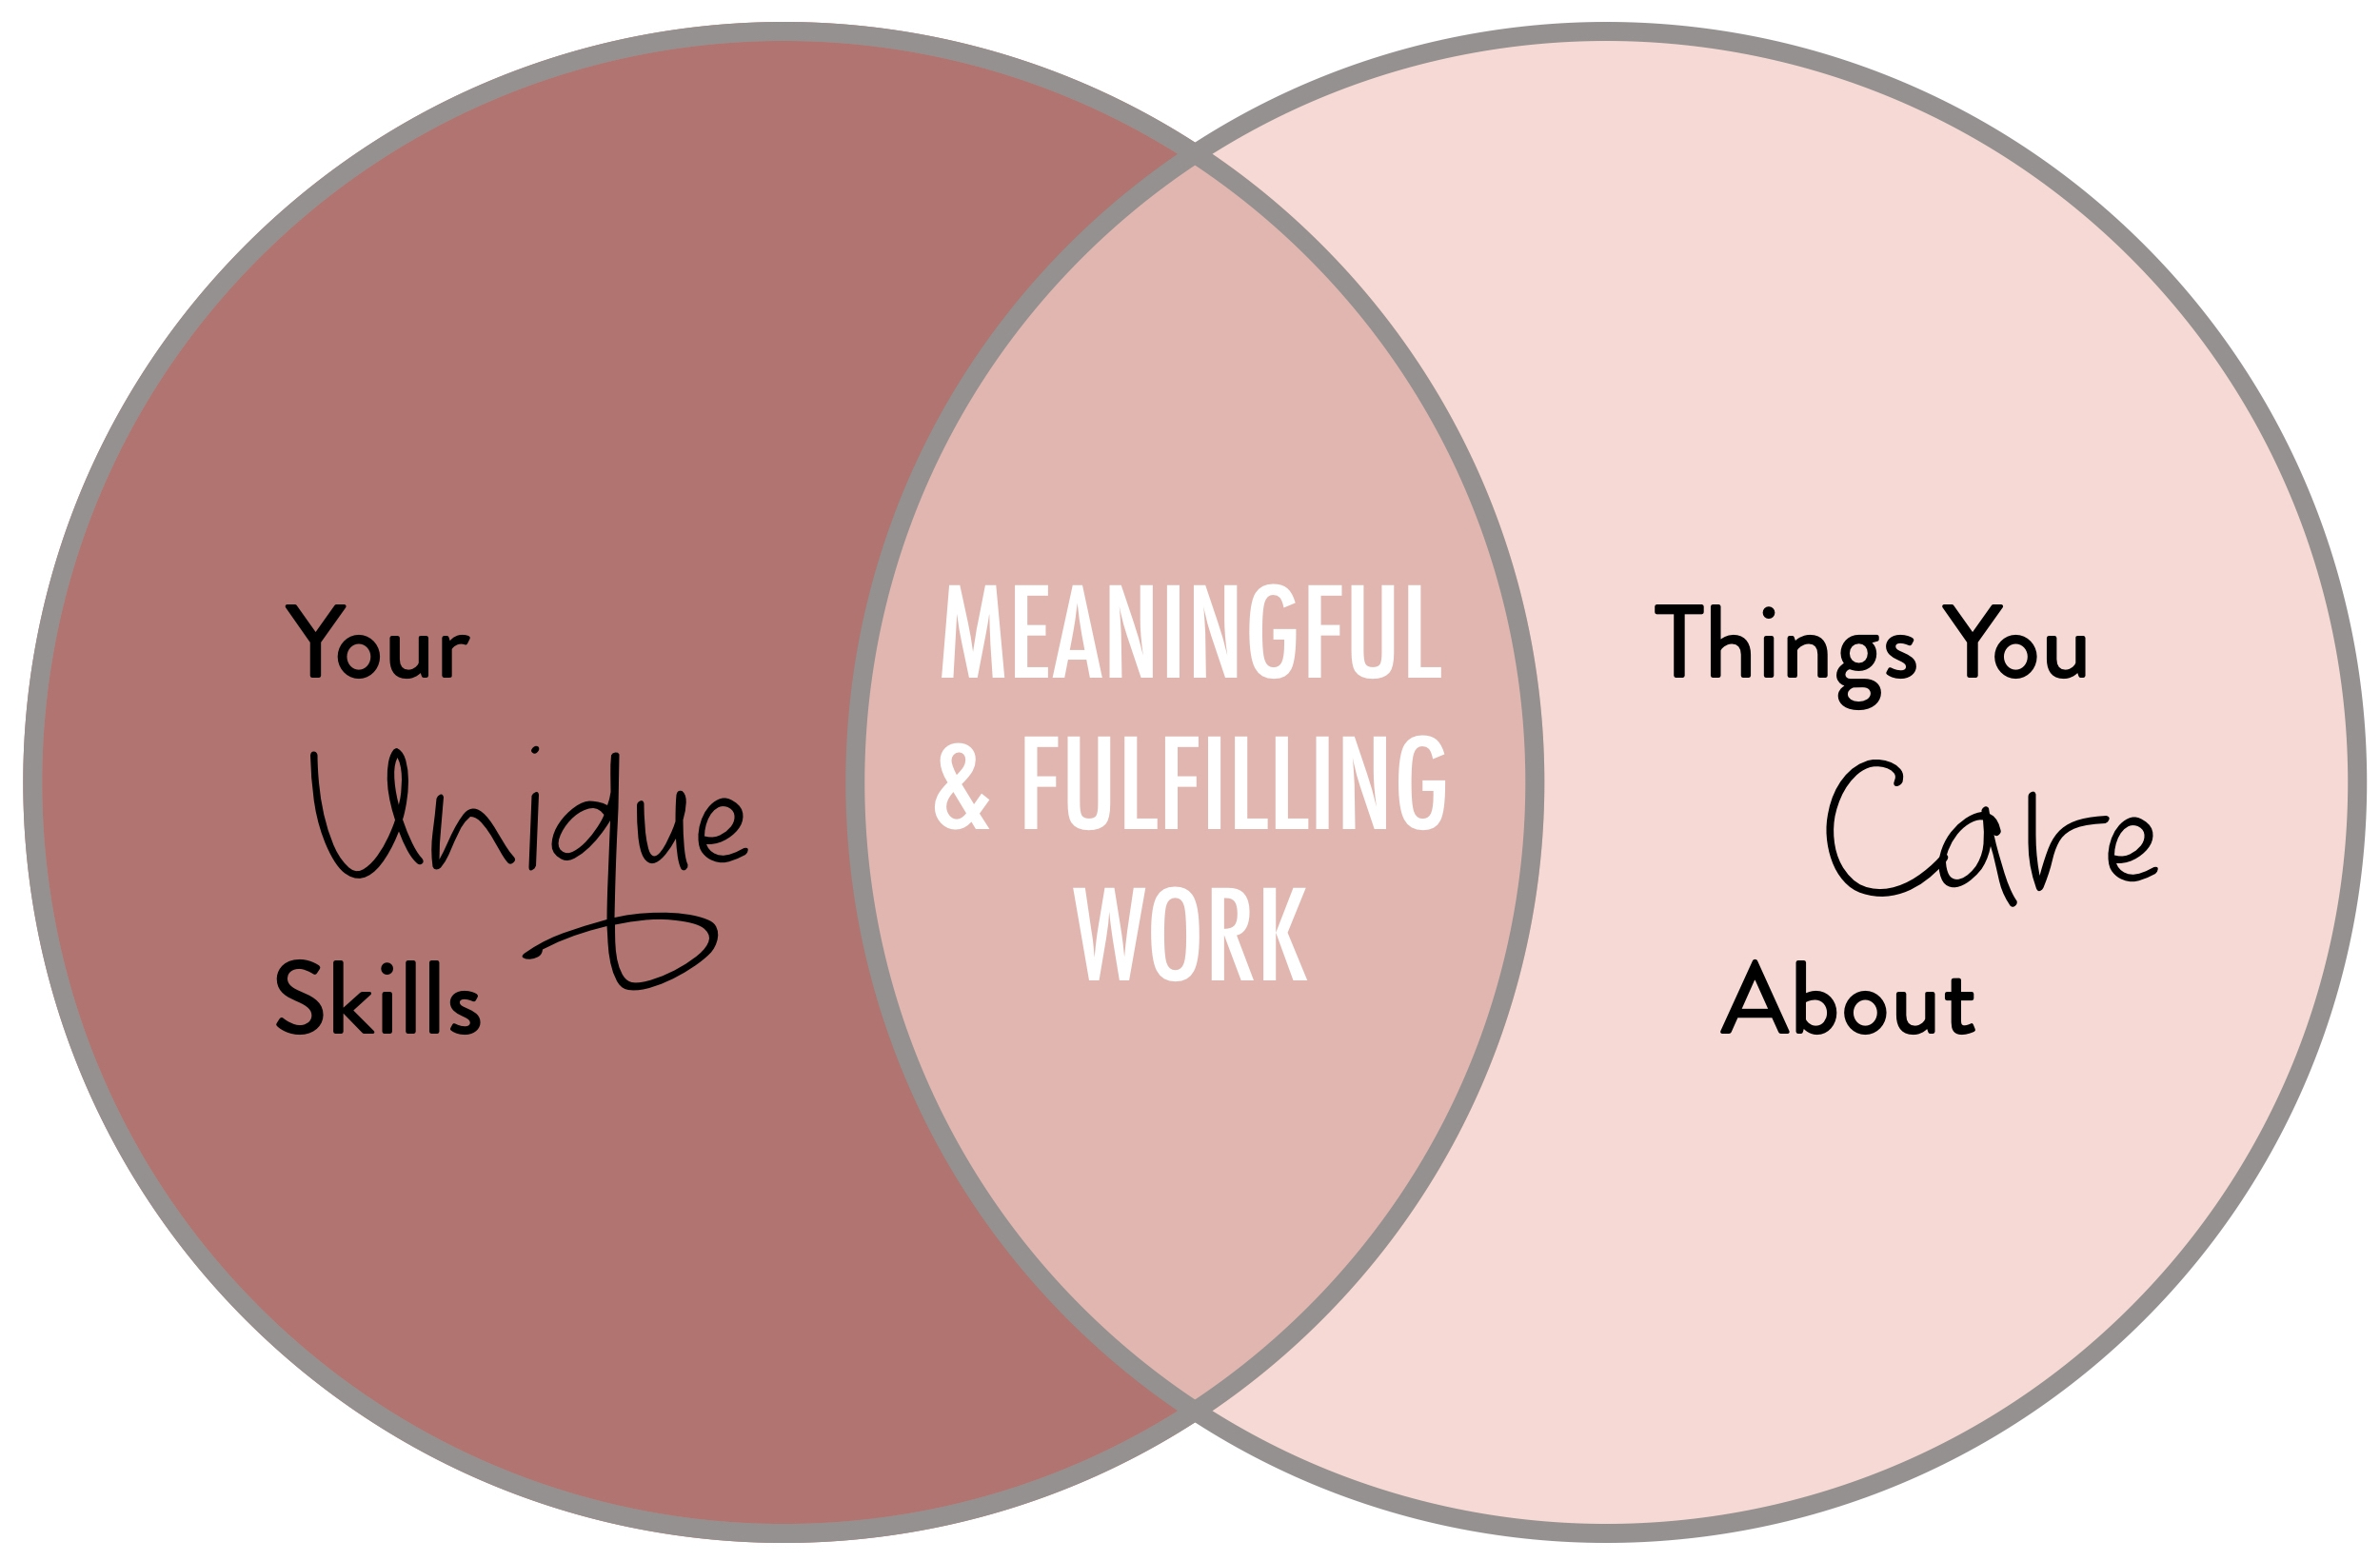 skills plus passions equal meaningful and fulfilling work - stacy kessler.001.jpeg